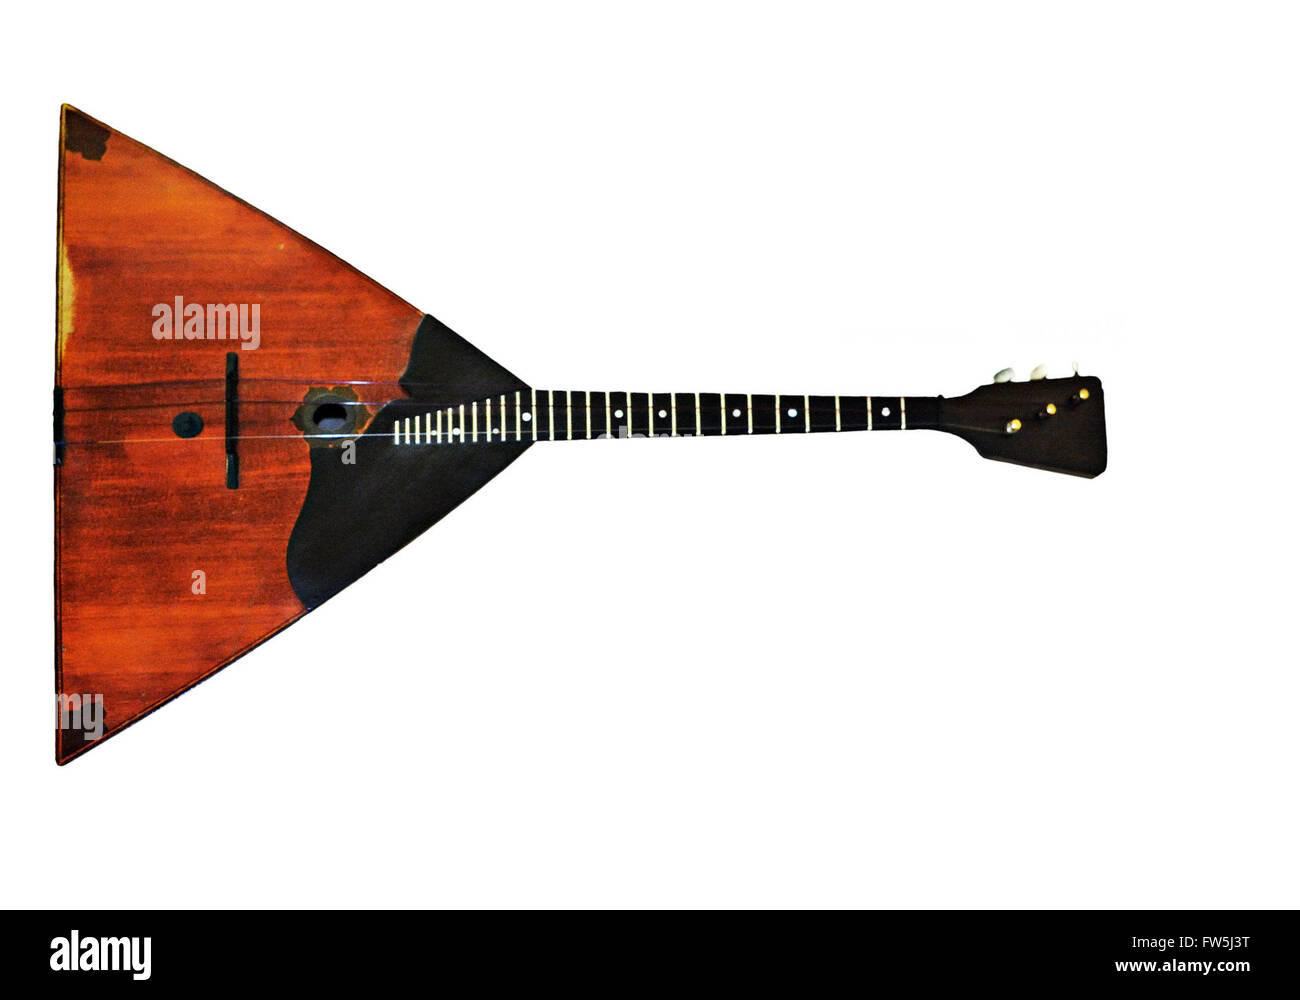 Balalaika, Russian three-stringed plucked instrument, cut-out, small picture - Stock Image